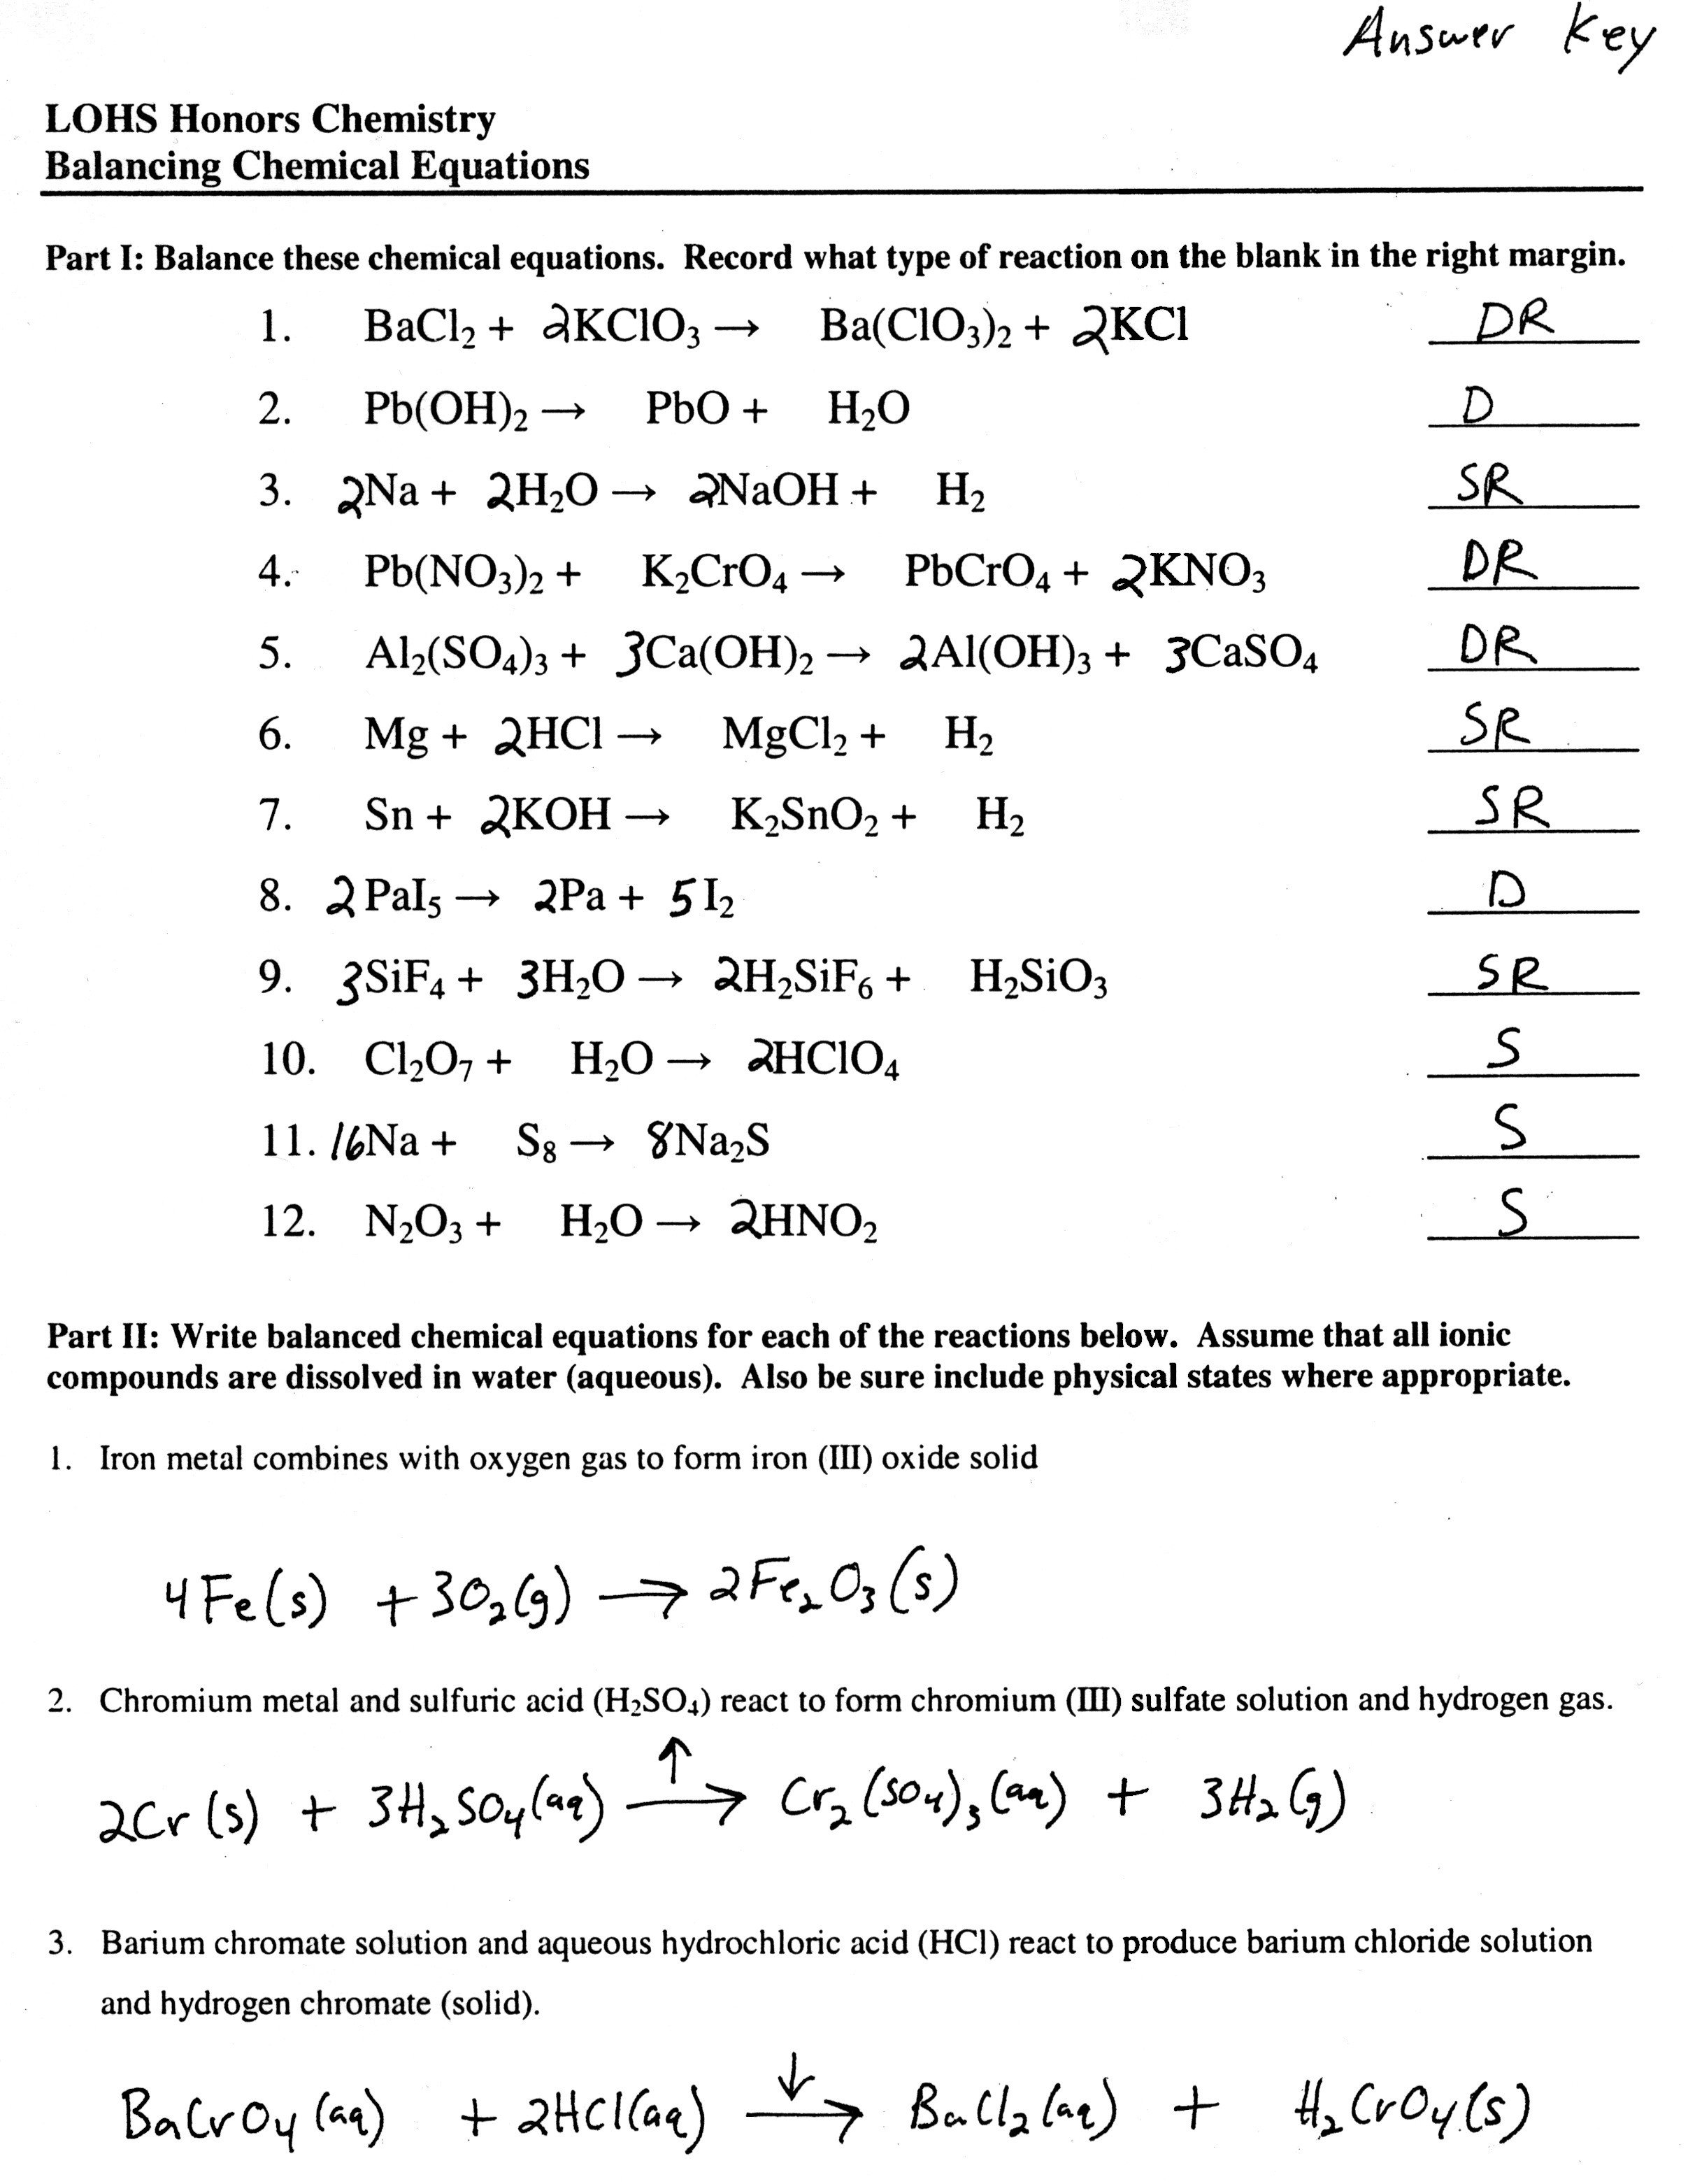 Awesome Collection Of Types Of Chemical Reaction Worksheet Ch 7 Throughout Types Of Chemical Reaction Worksheet Ch 7